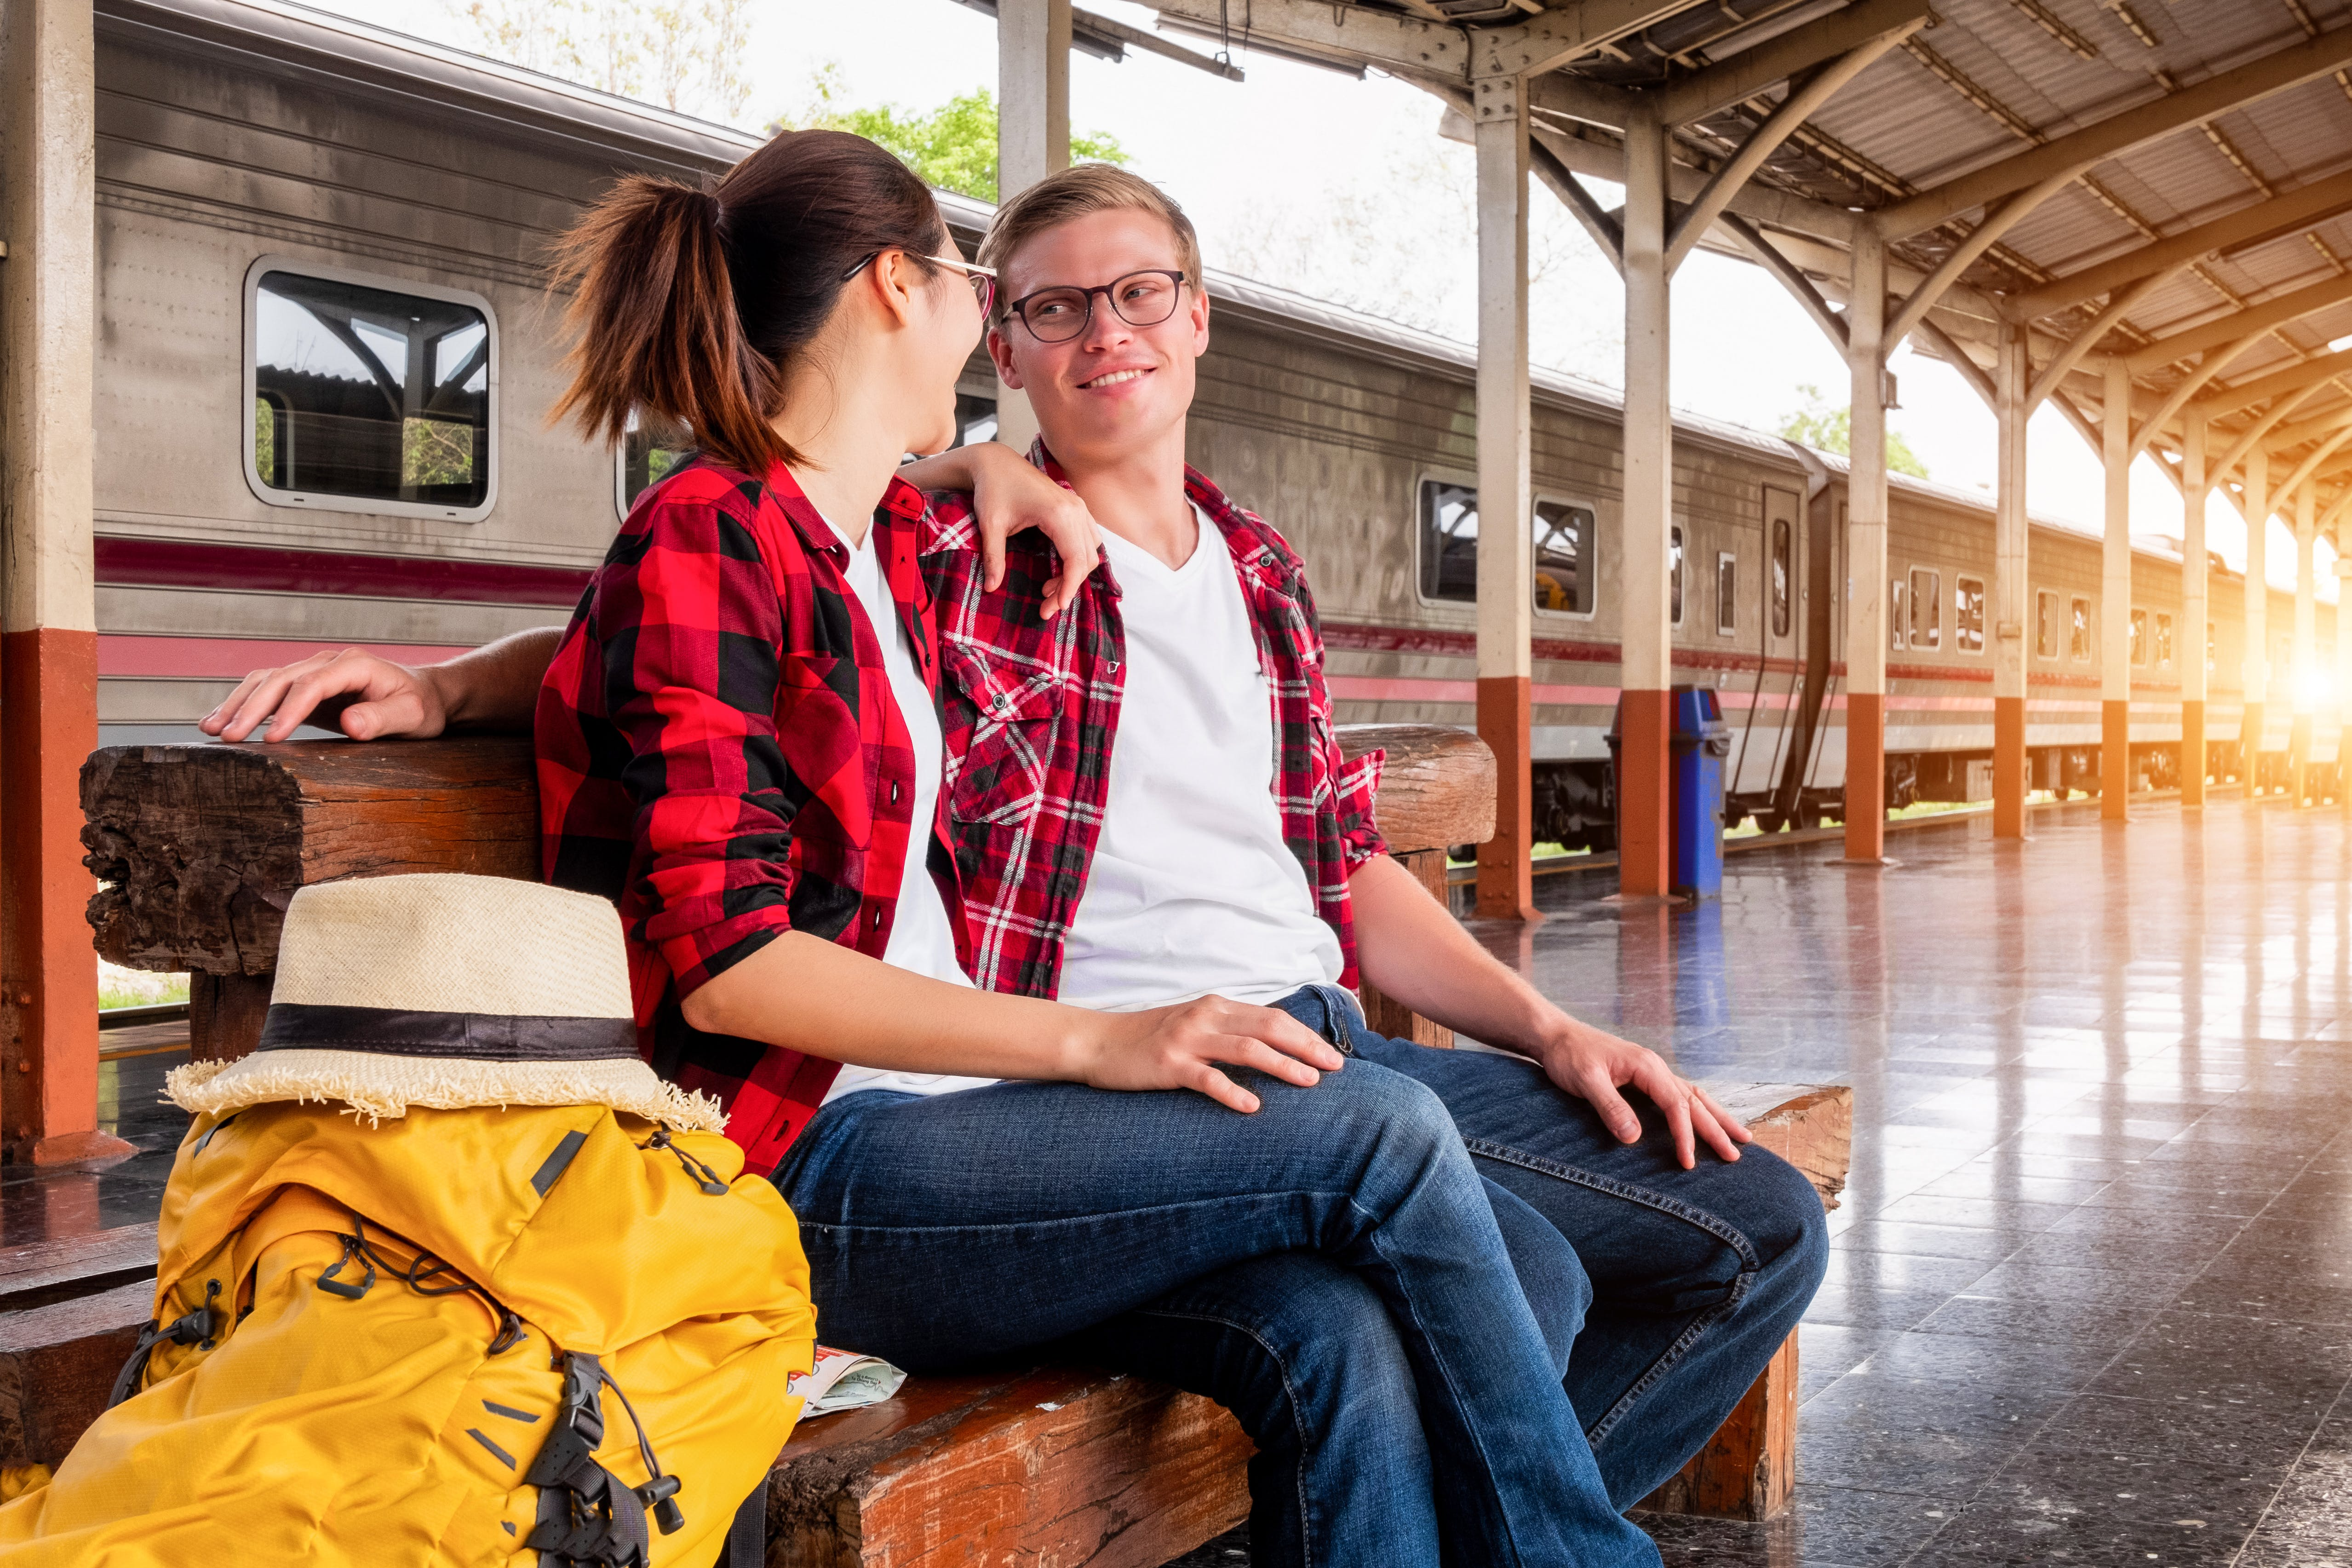 Man and Woman Sitting on Brown Wooden Bench at the Train Station